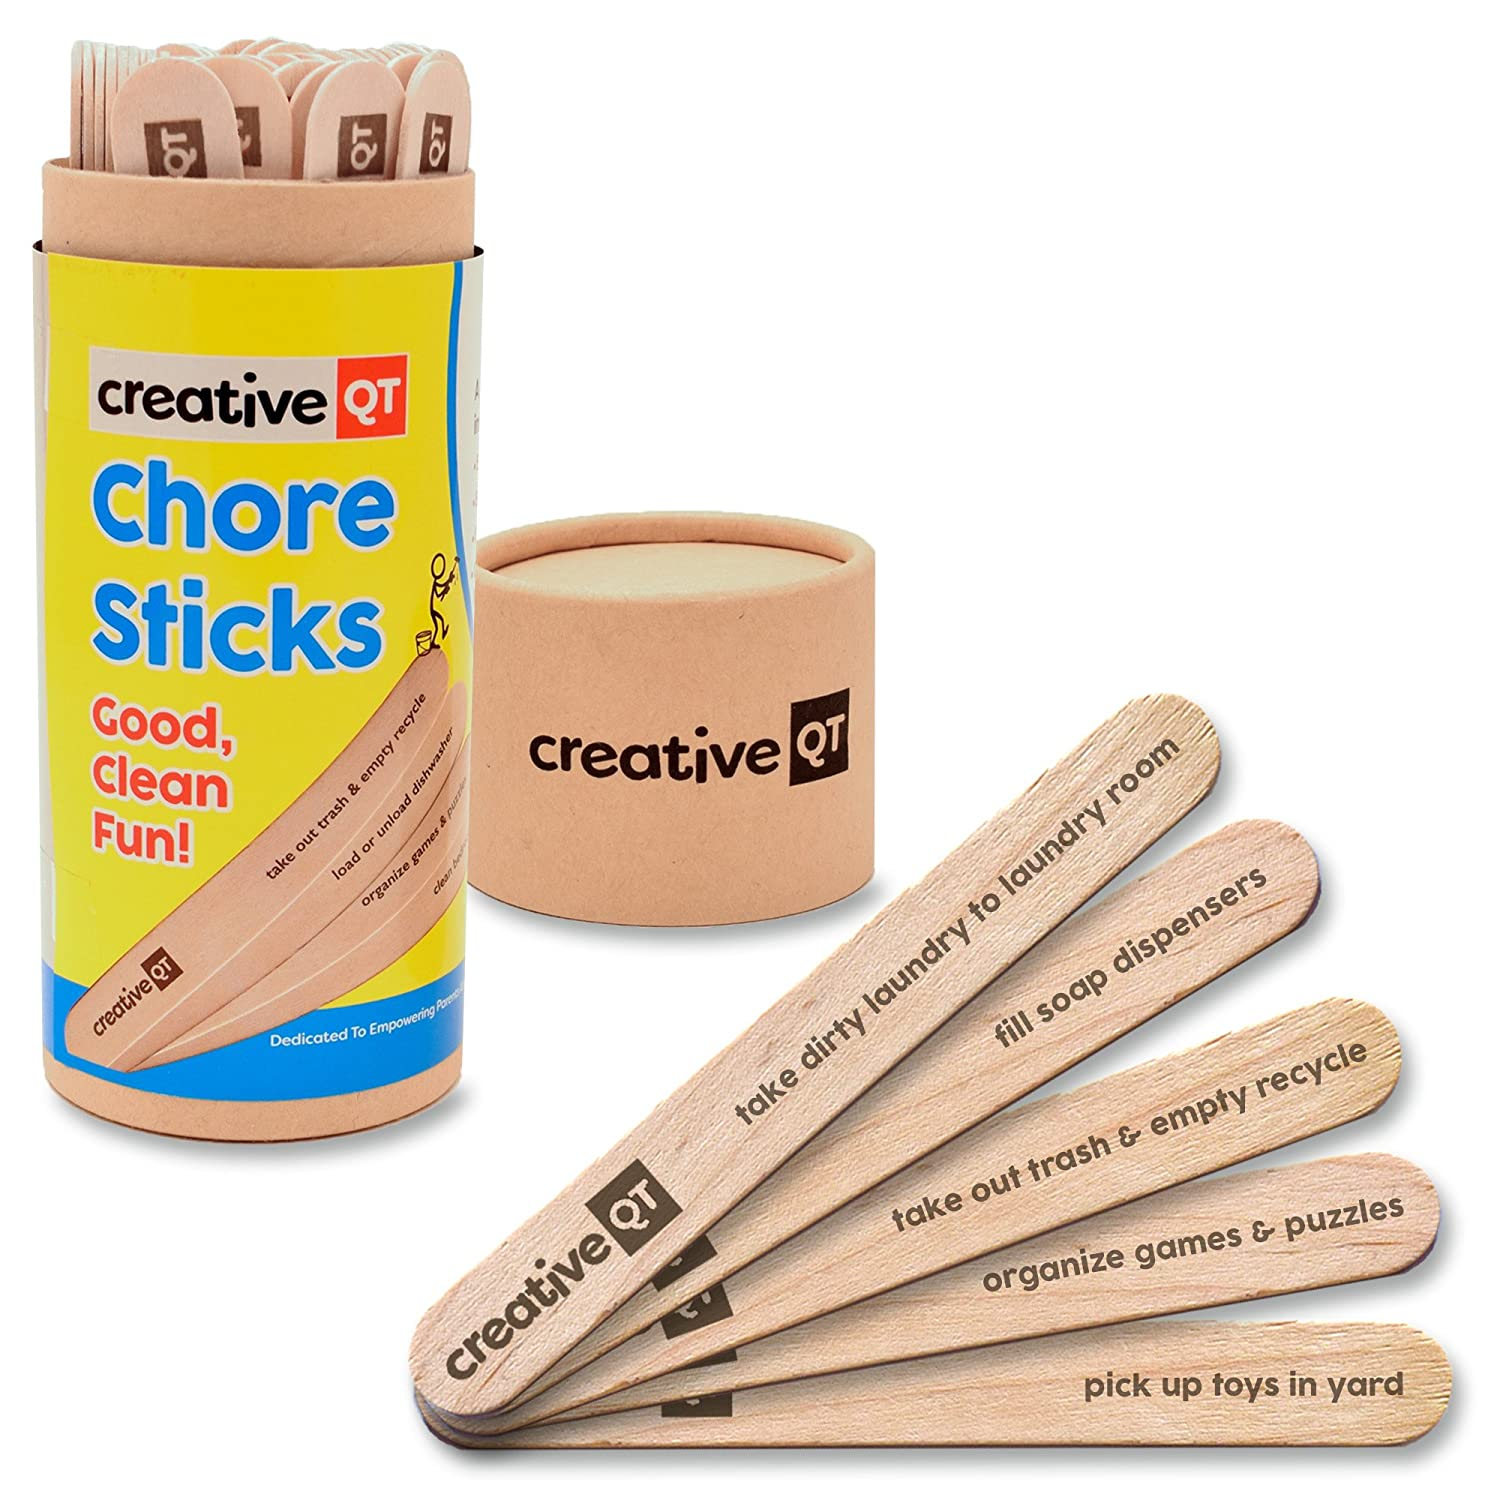 Creative Qt Chore Sticks - Make It A Game For Your Kids To Help Out Around The House ? A Fun Alternative To Chore Charts That Will Keep Them Coming Back For More ? Good, Clean Fun